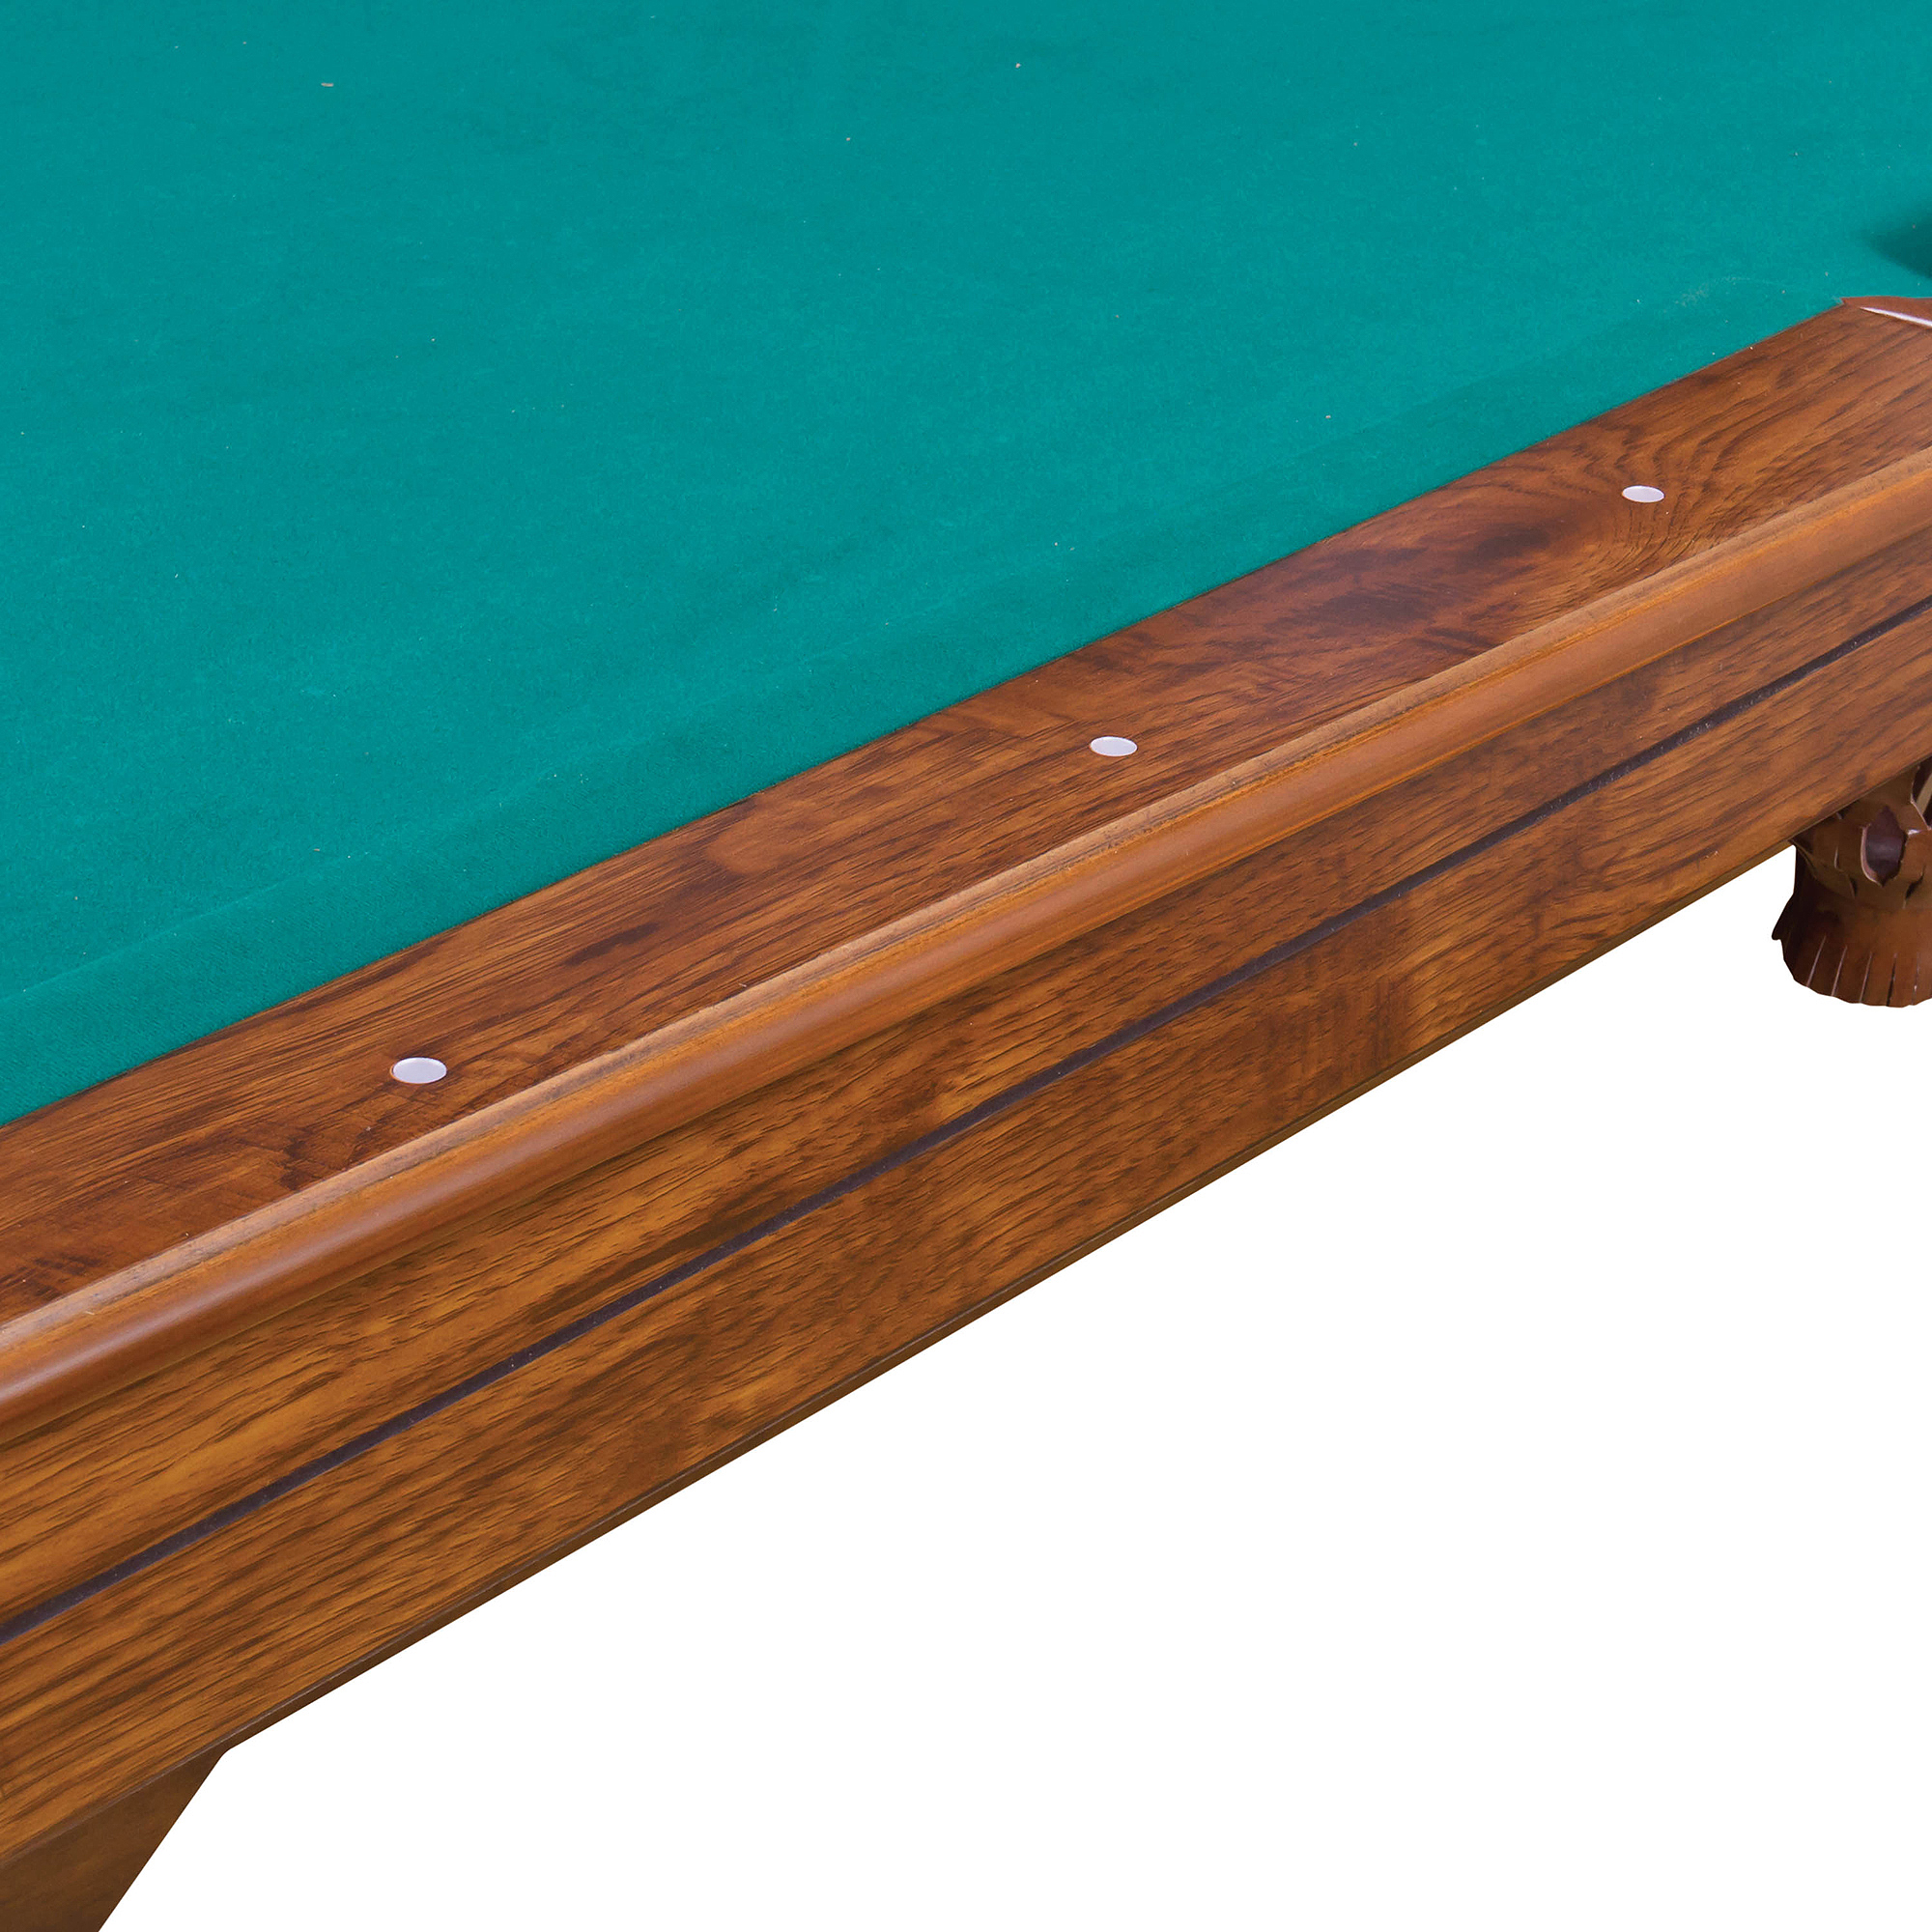 6 Foot Slate Pool Table For Sale | Mizerak Pool Table | Mizerak Pool